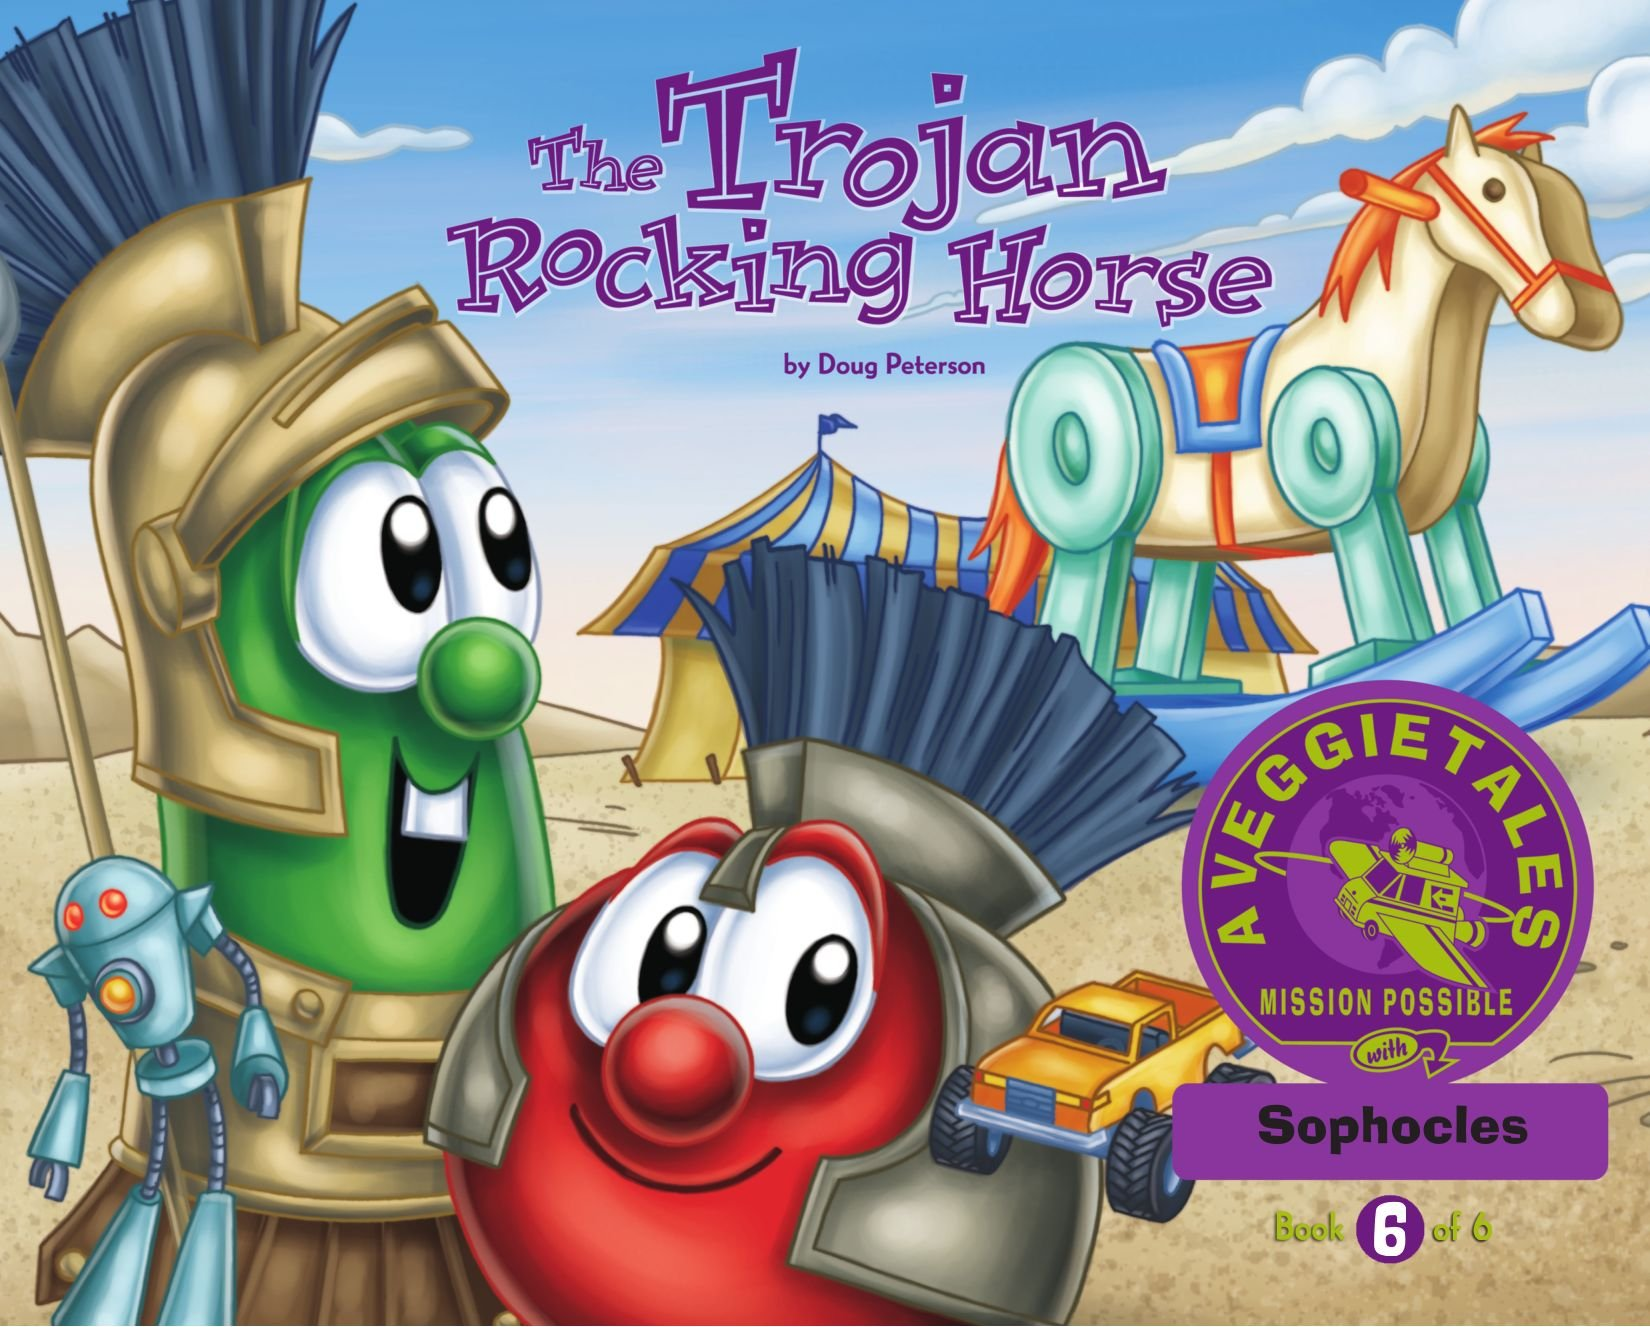 The Trojan Rocking Horse - VeggieTales Mission Possible Adventure Series #6: Personalized for Sophocles (Girl) PDF